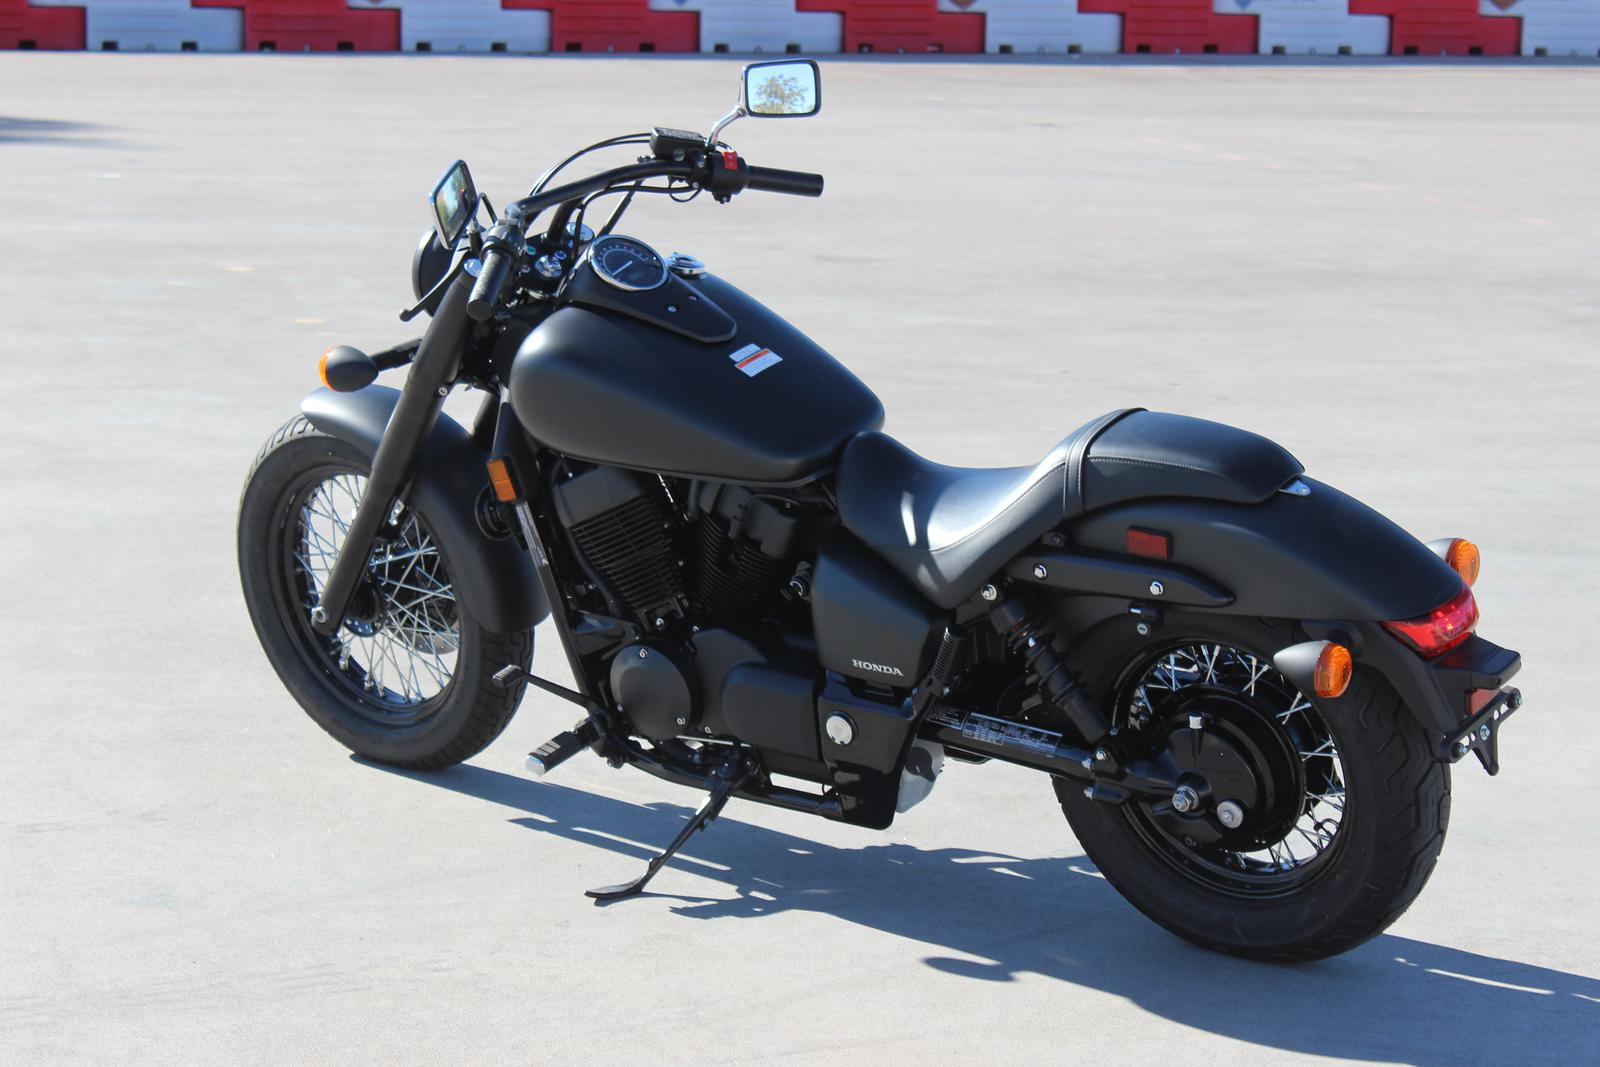 2018 Honda Shadow Phantom for sale in Scottsdale, AZ. GO AZ ...